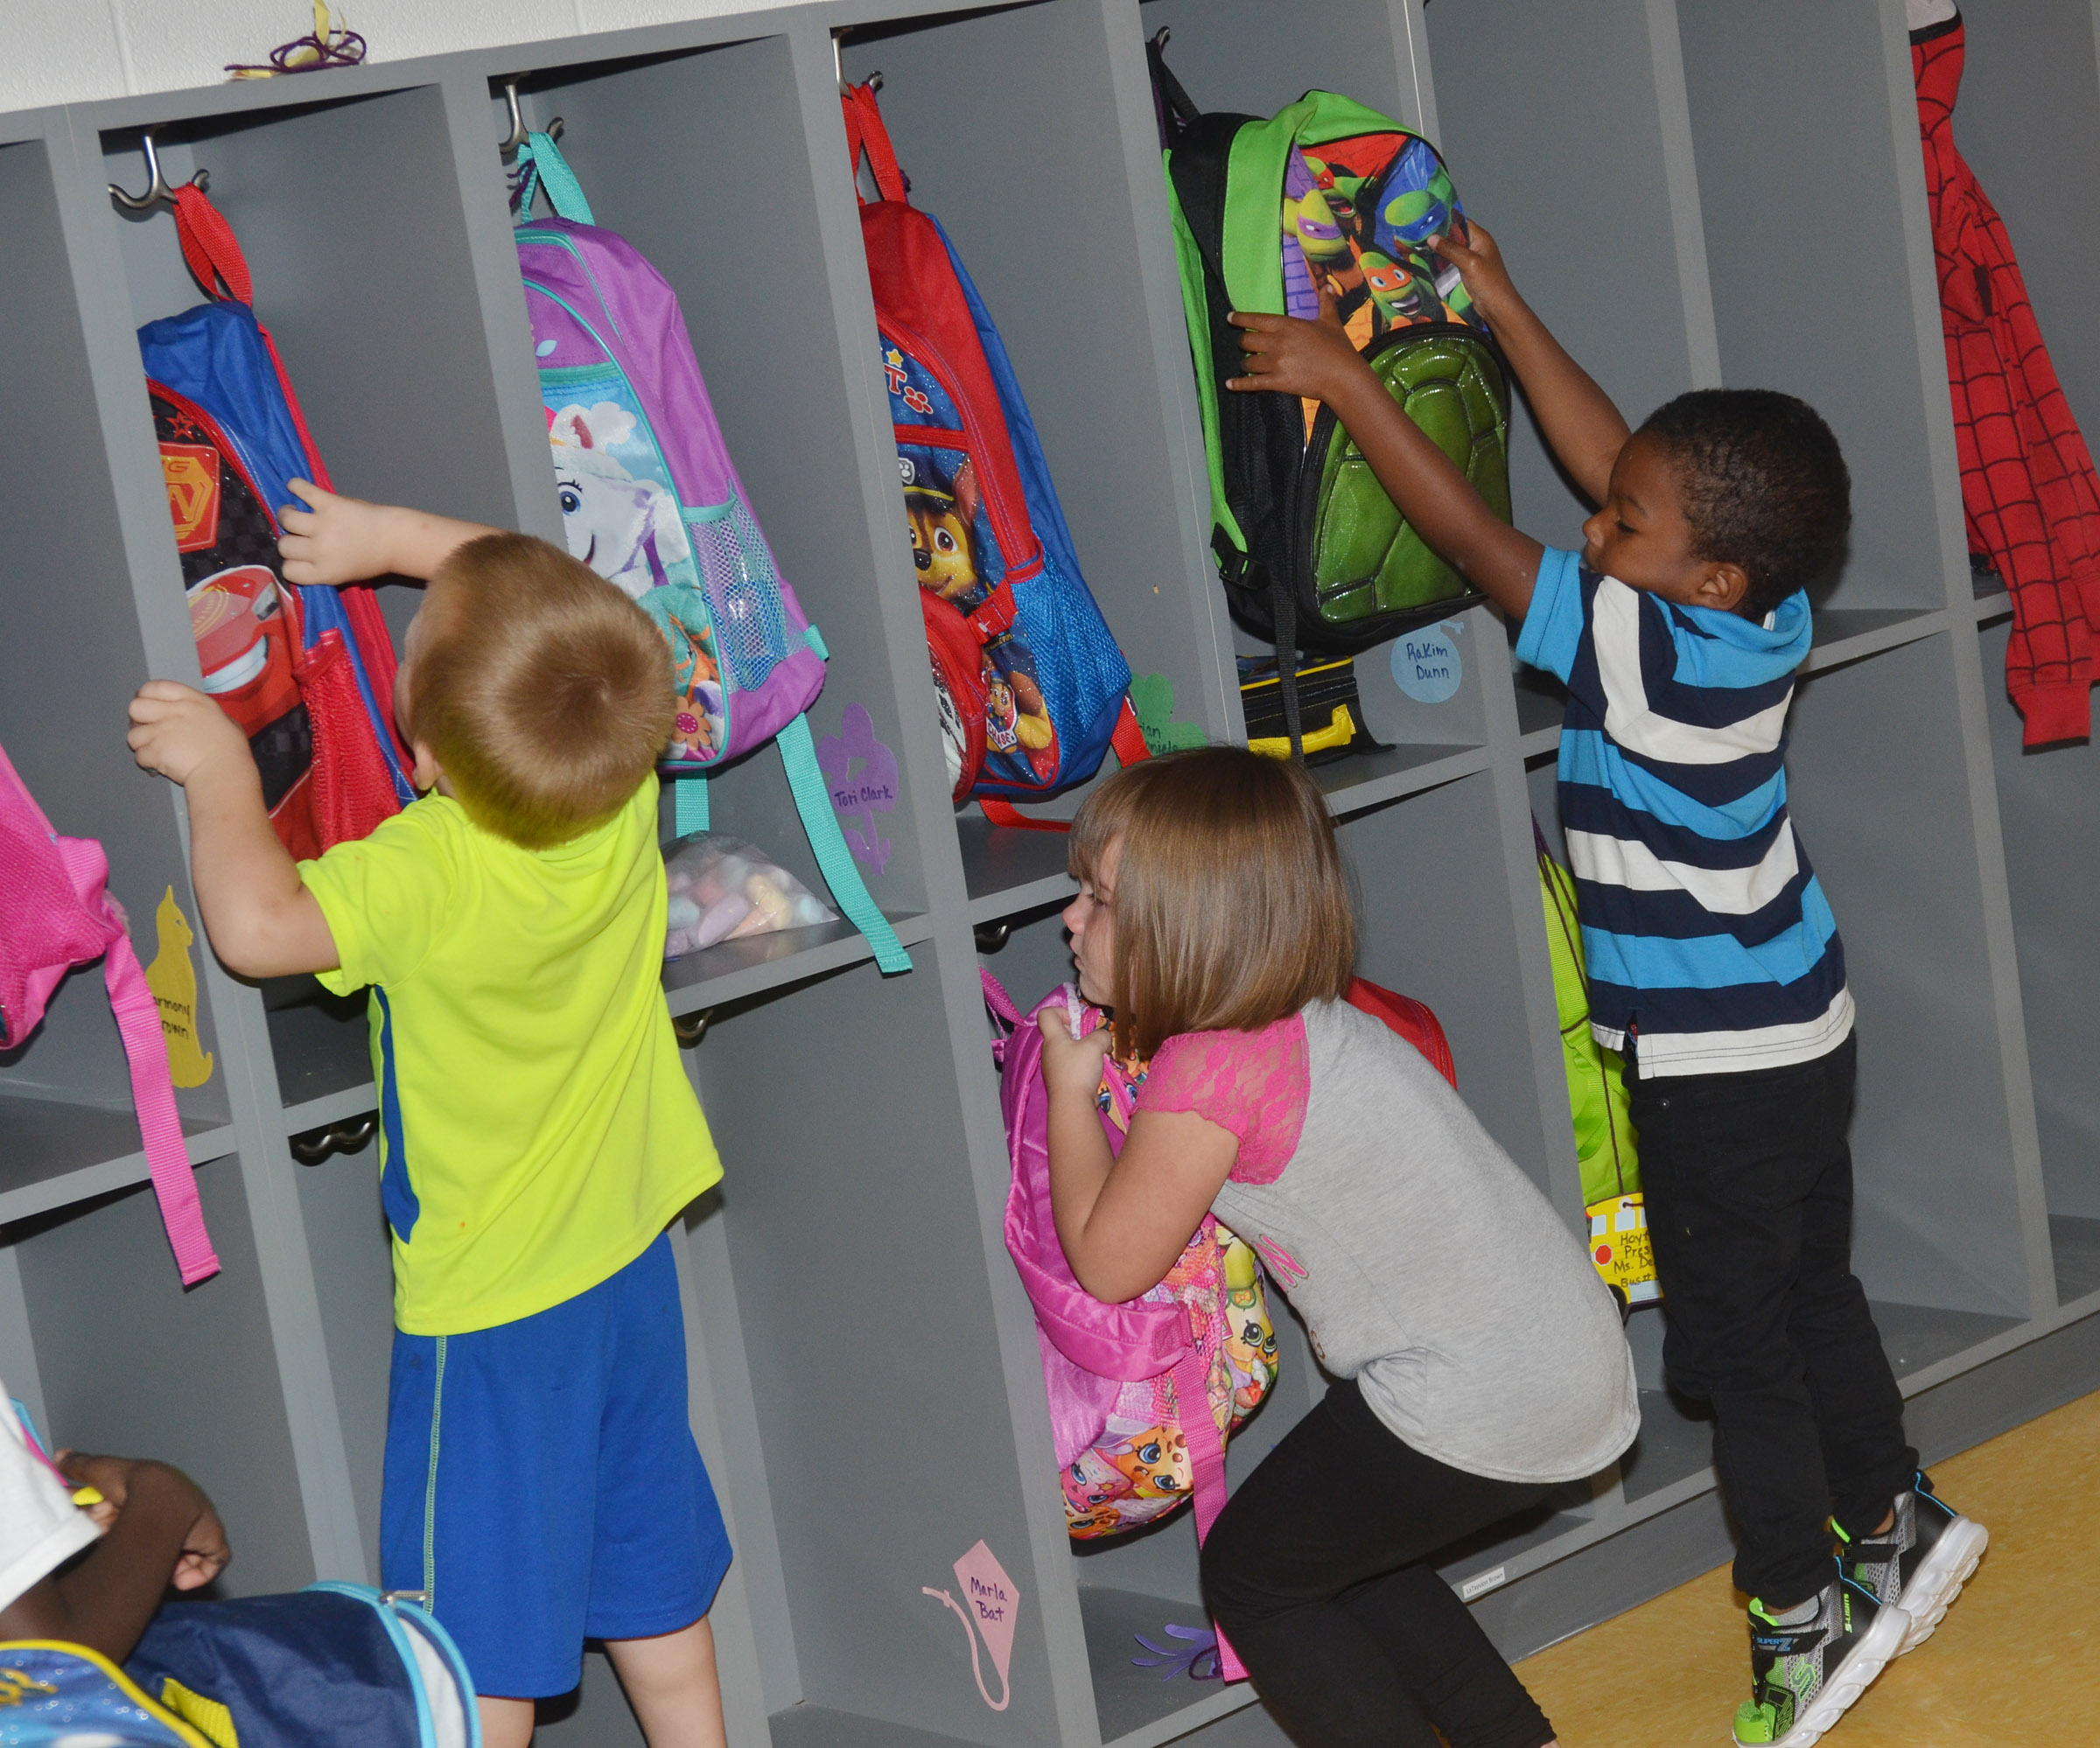 CES preschool students, from left, Landon Allen, Lirra Berry and Rakim Dunn get their backpacks as they prepare to go home after their first day of school.